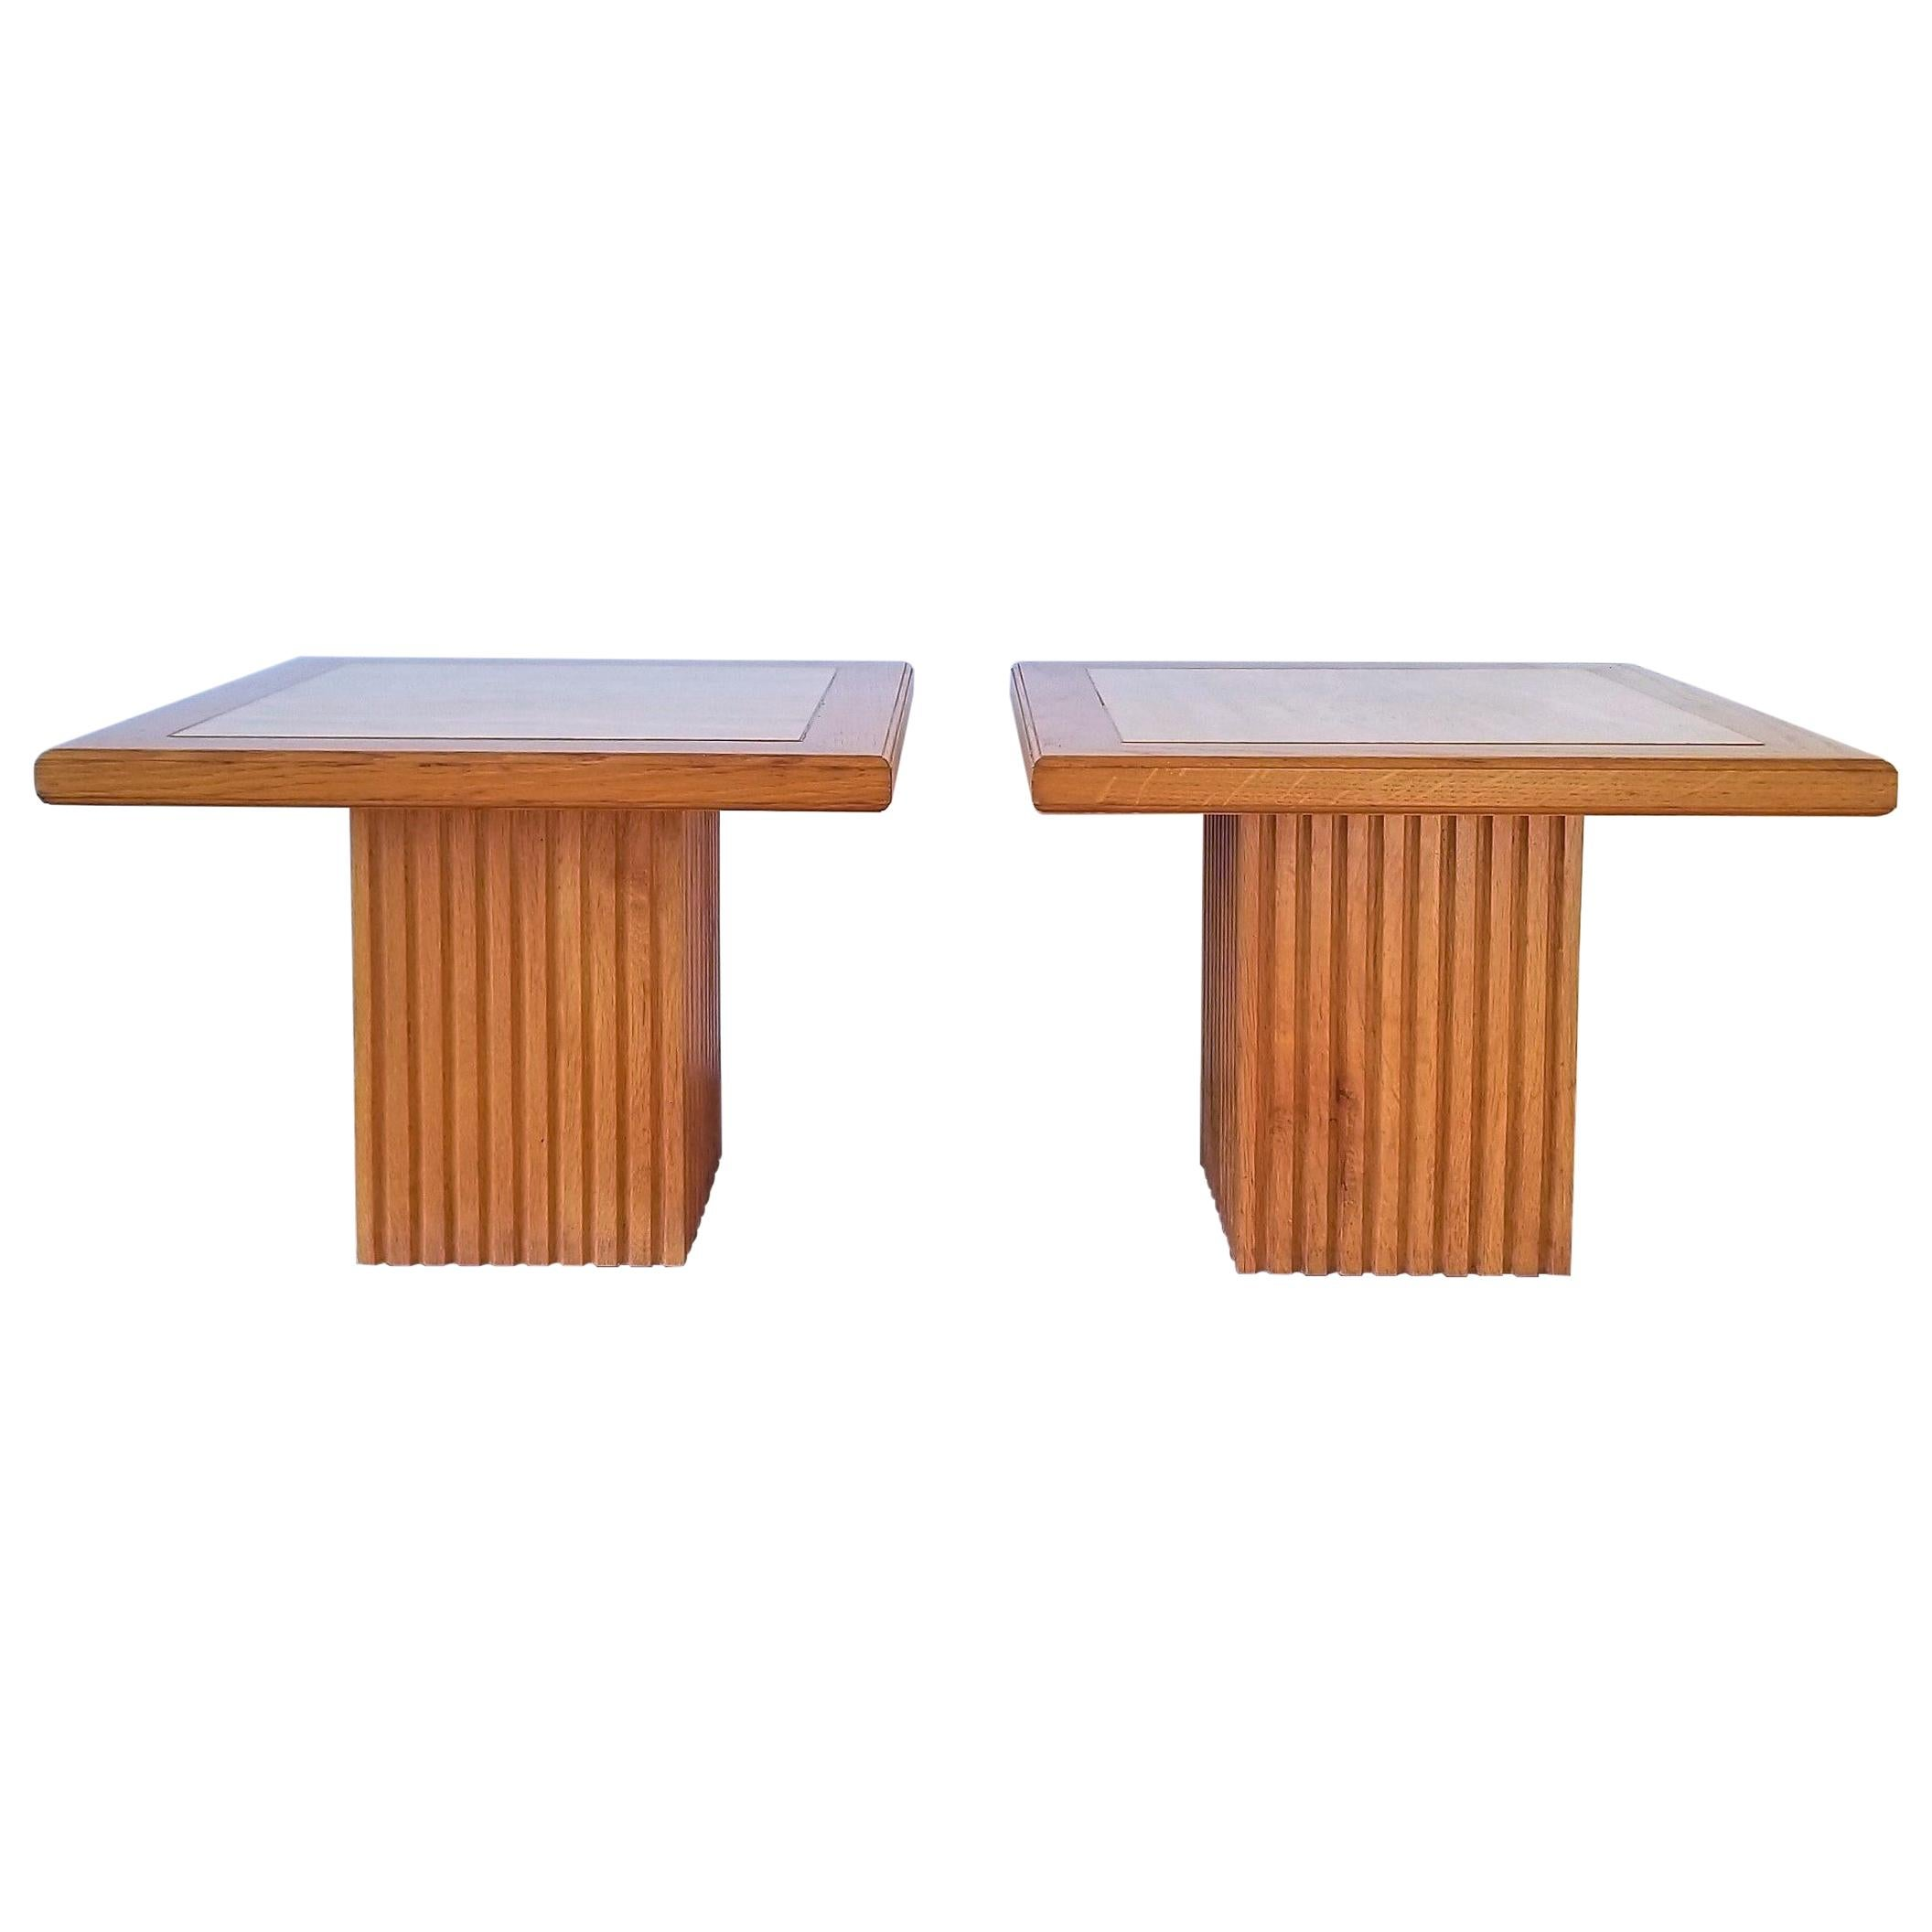 Pair of Oak and Beige Travertine Neoclassical End Tables, France, 1970s